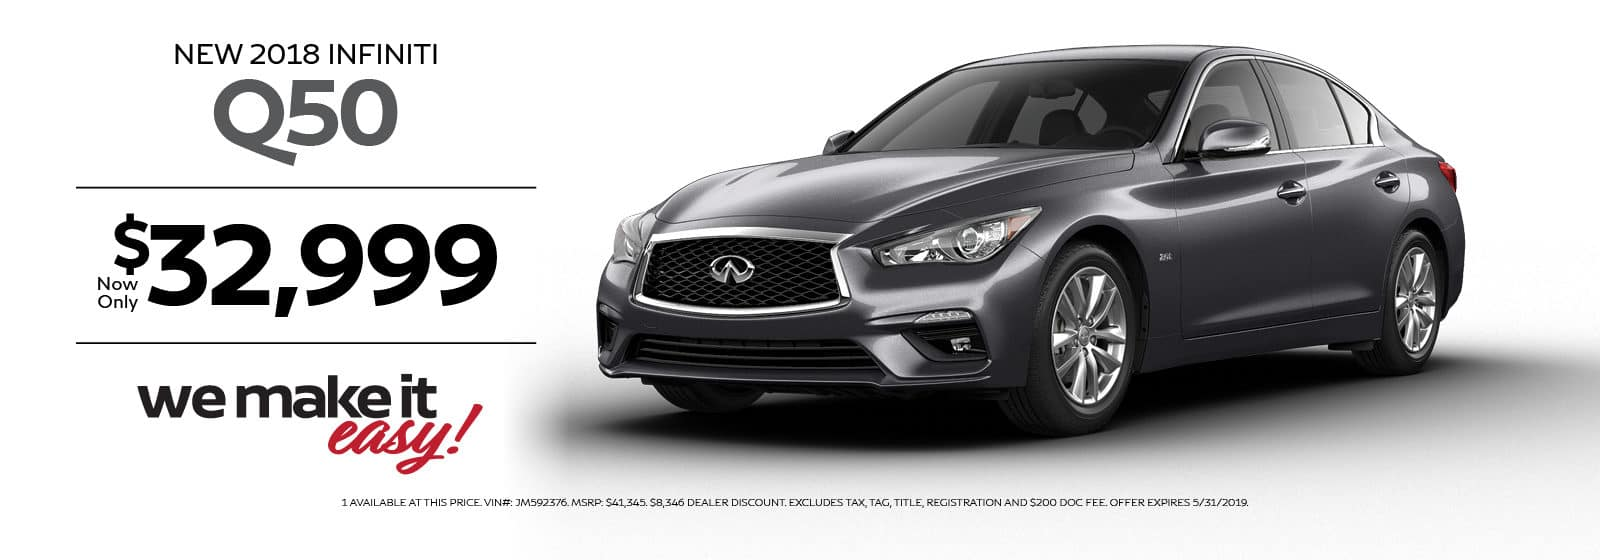 RAY BRANDT INFINITI Q50 SPECIAL